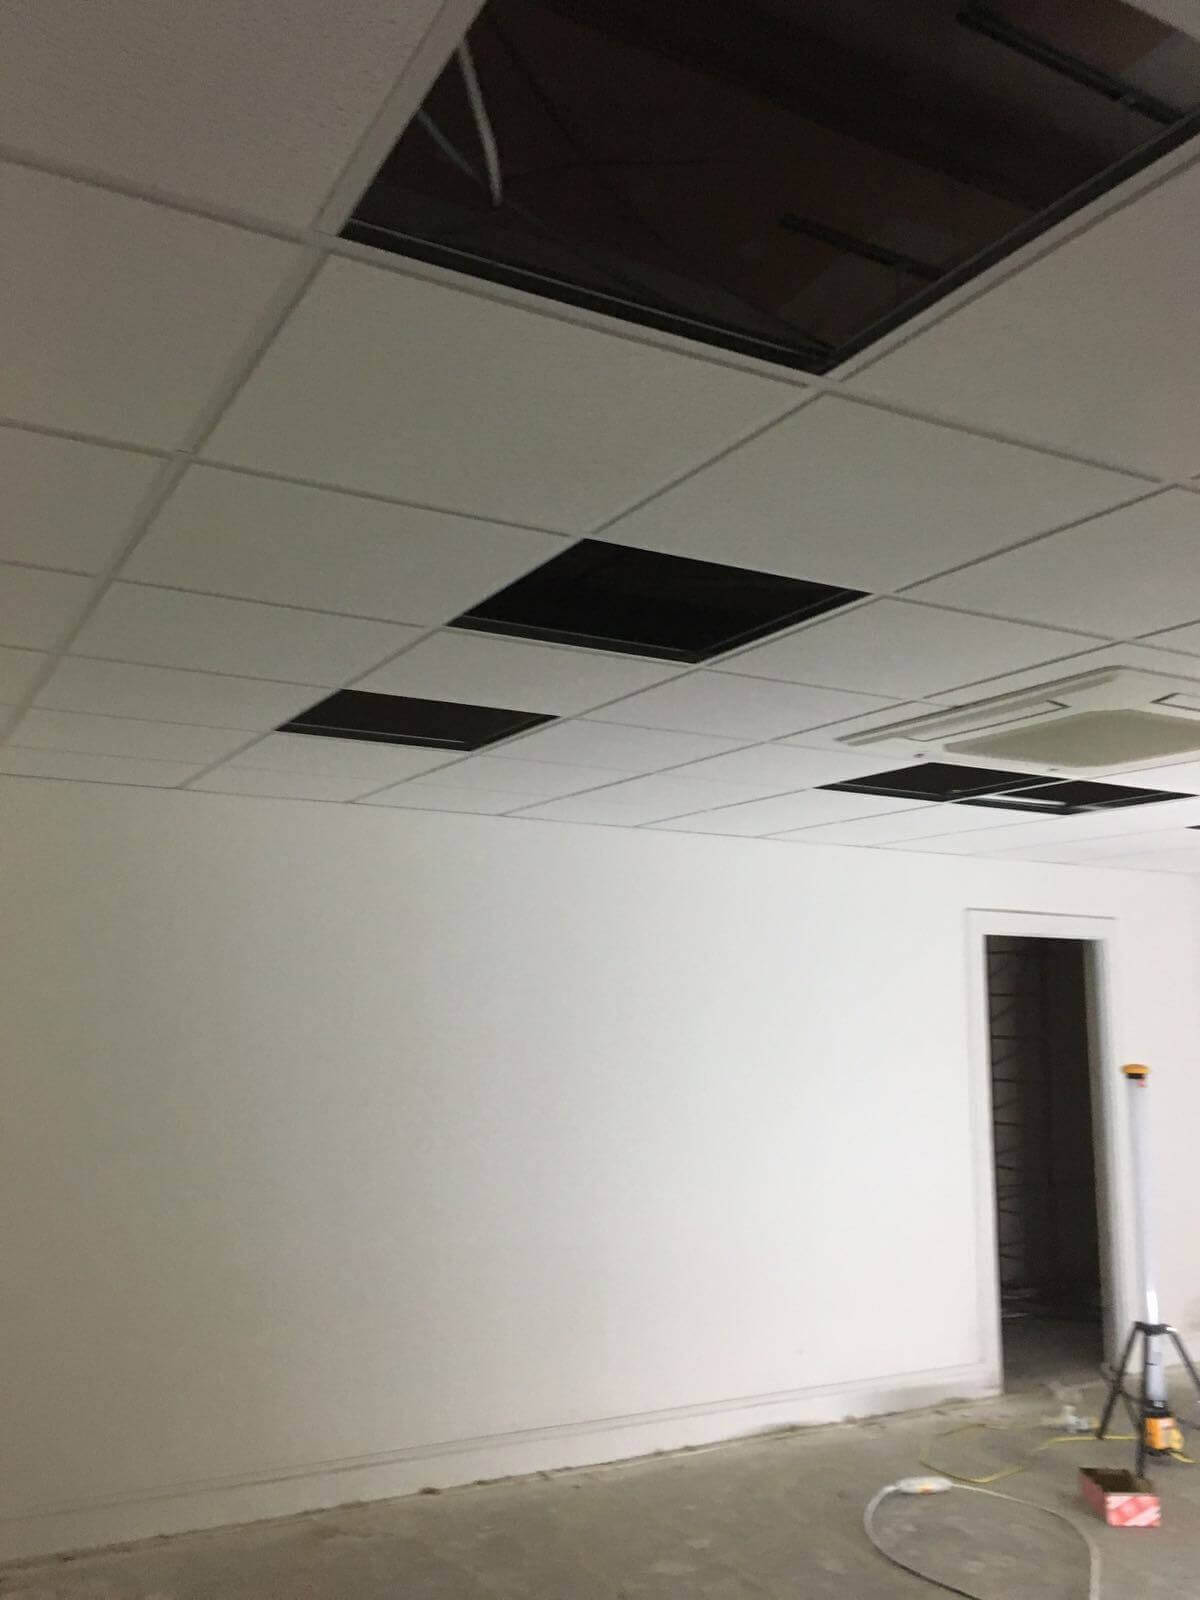 Ceilings and Track Re-coating Luton, Bedfordshire